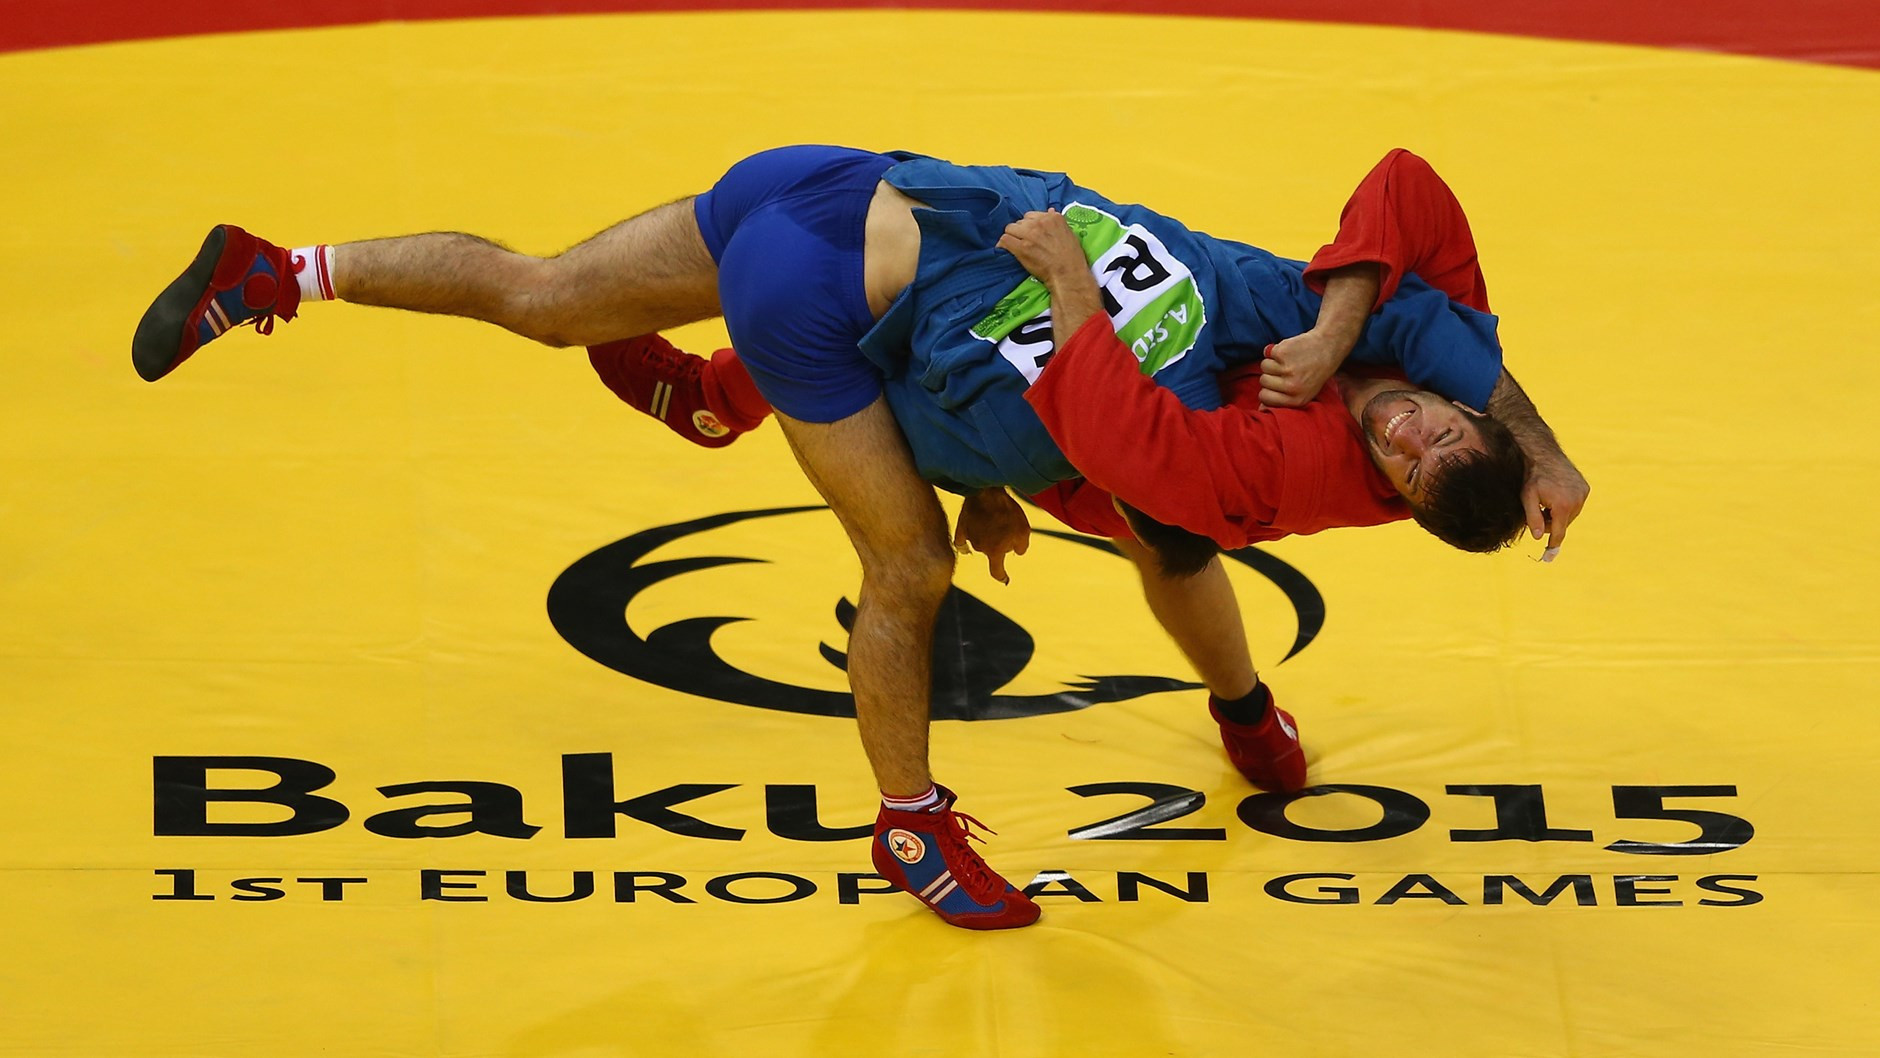 Stsiapan Papou, in red, won one of Belarus' two sambo gold medals at the 2015 European Games ©Getty Images